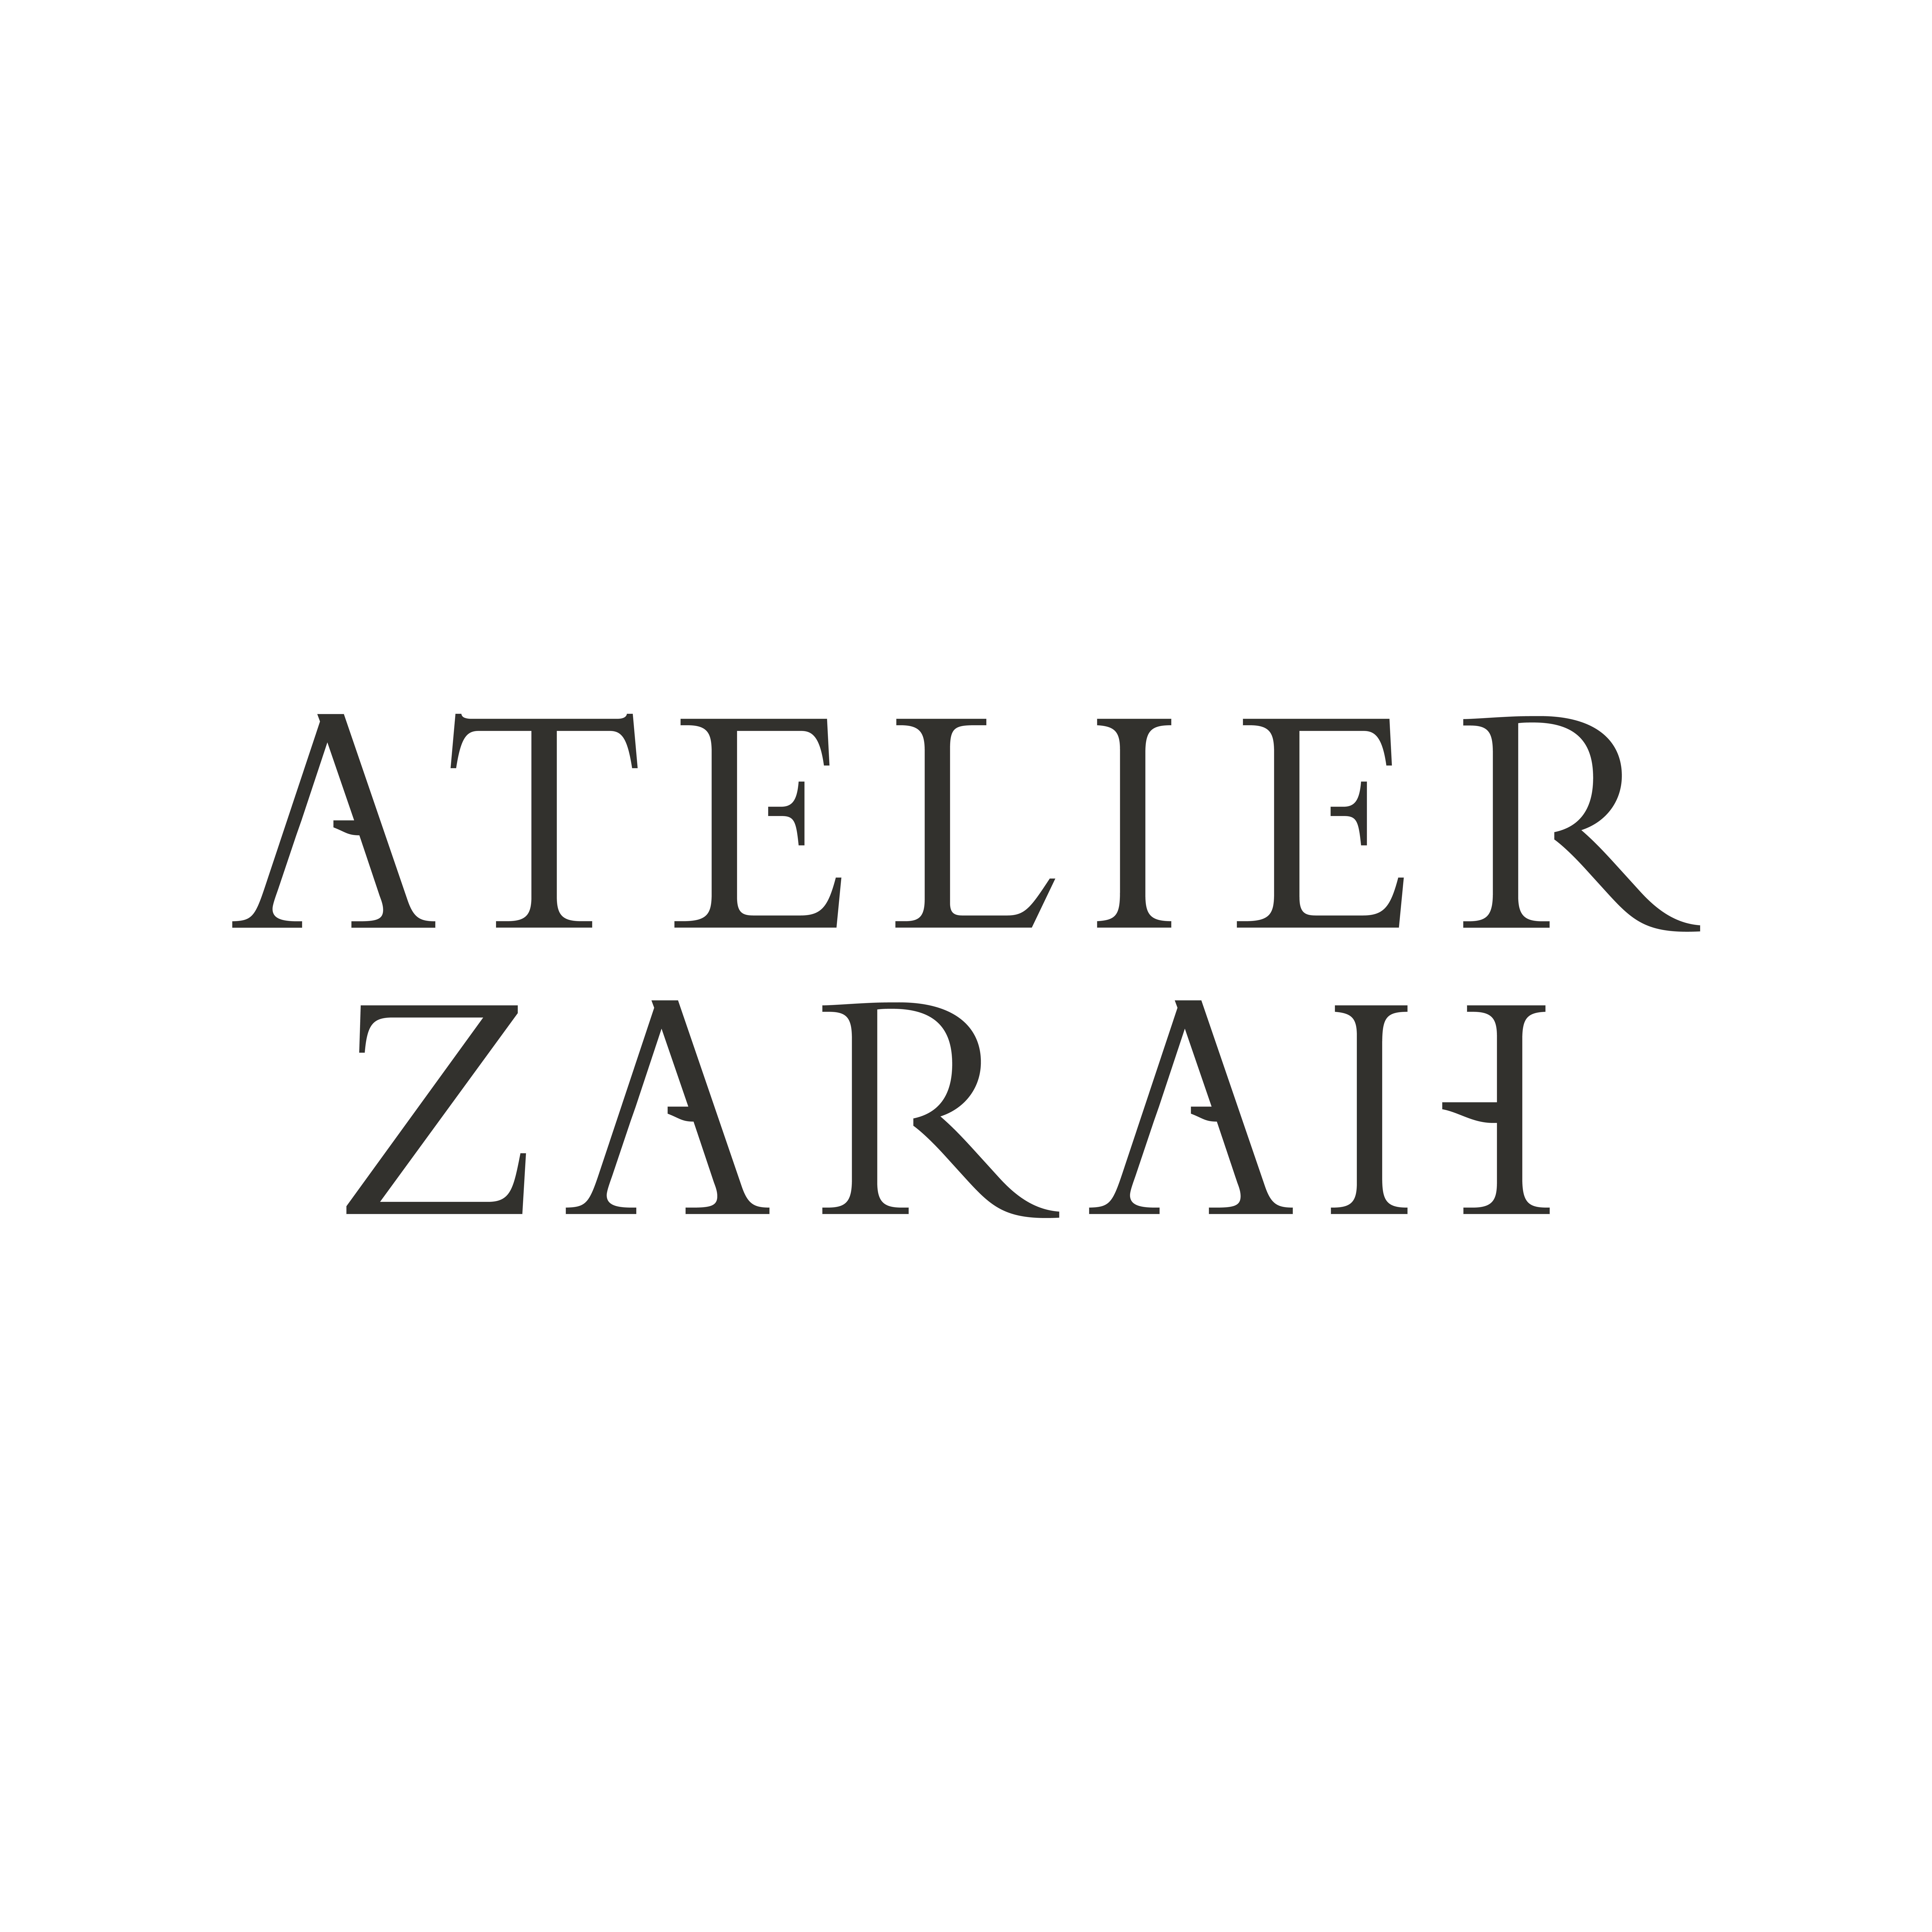 atelierzarah_logo_alternative_black_googleeintrag